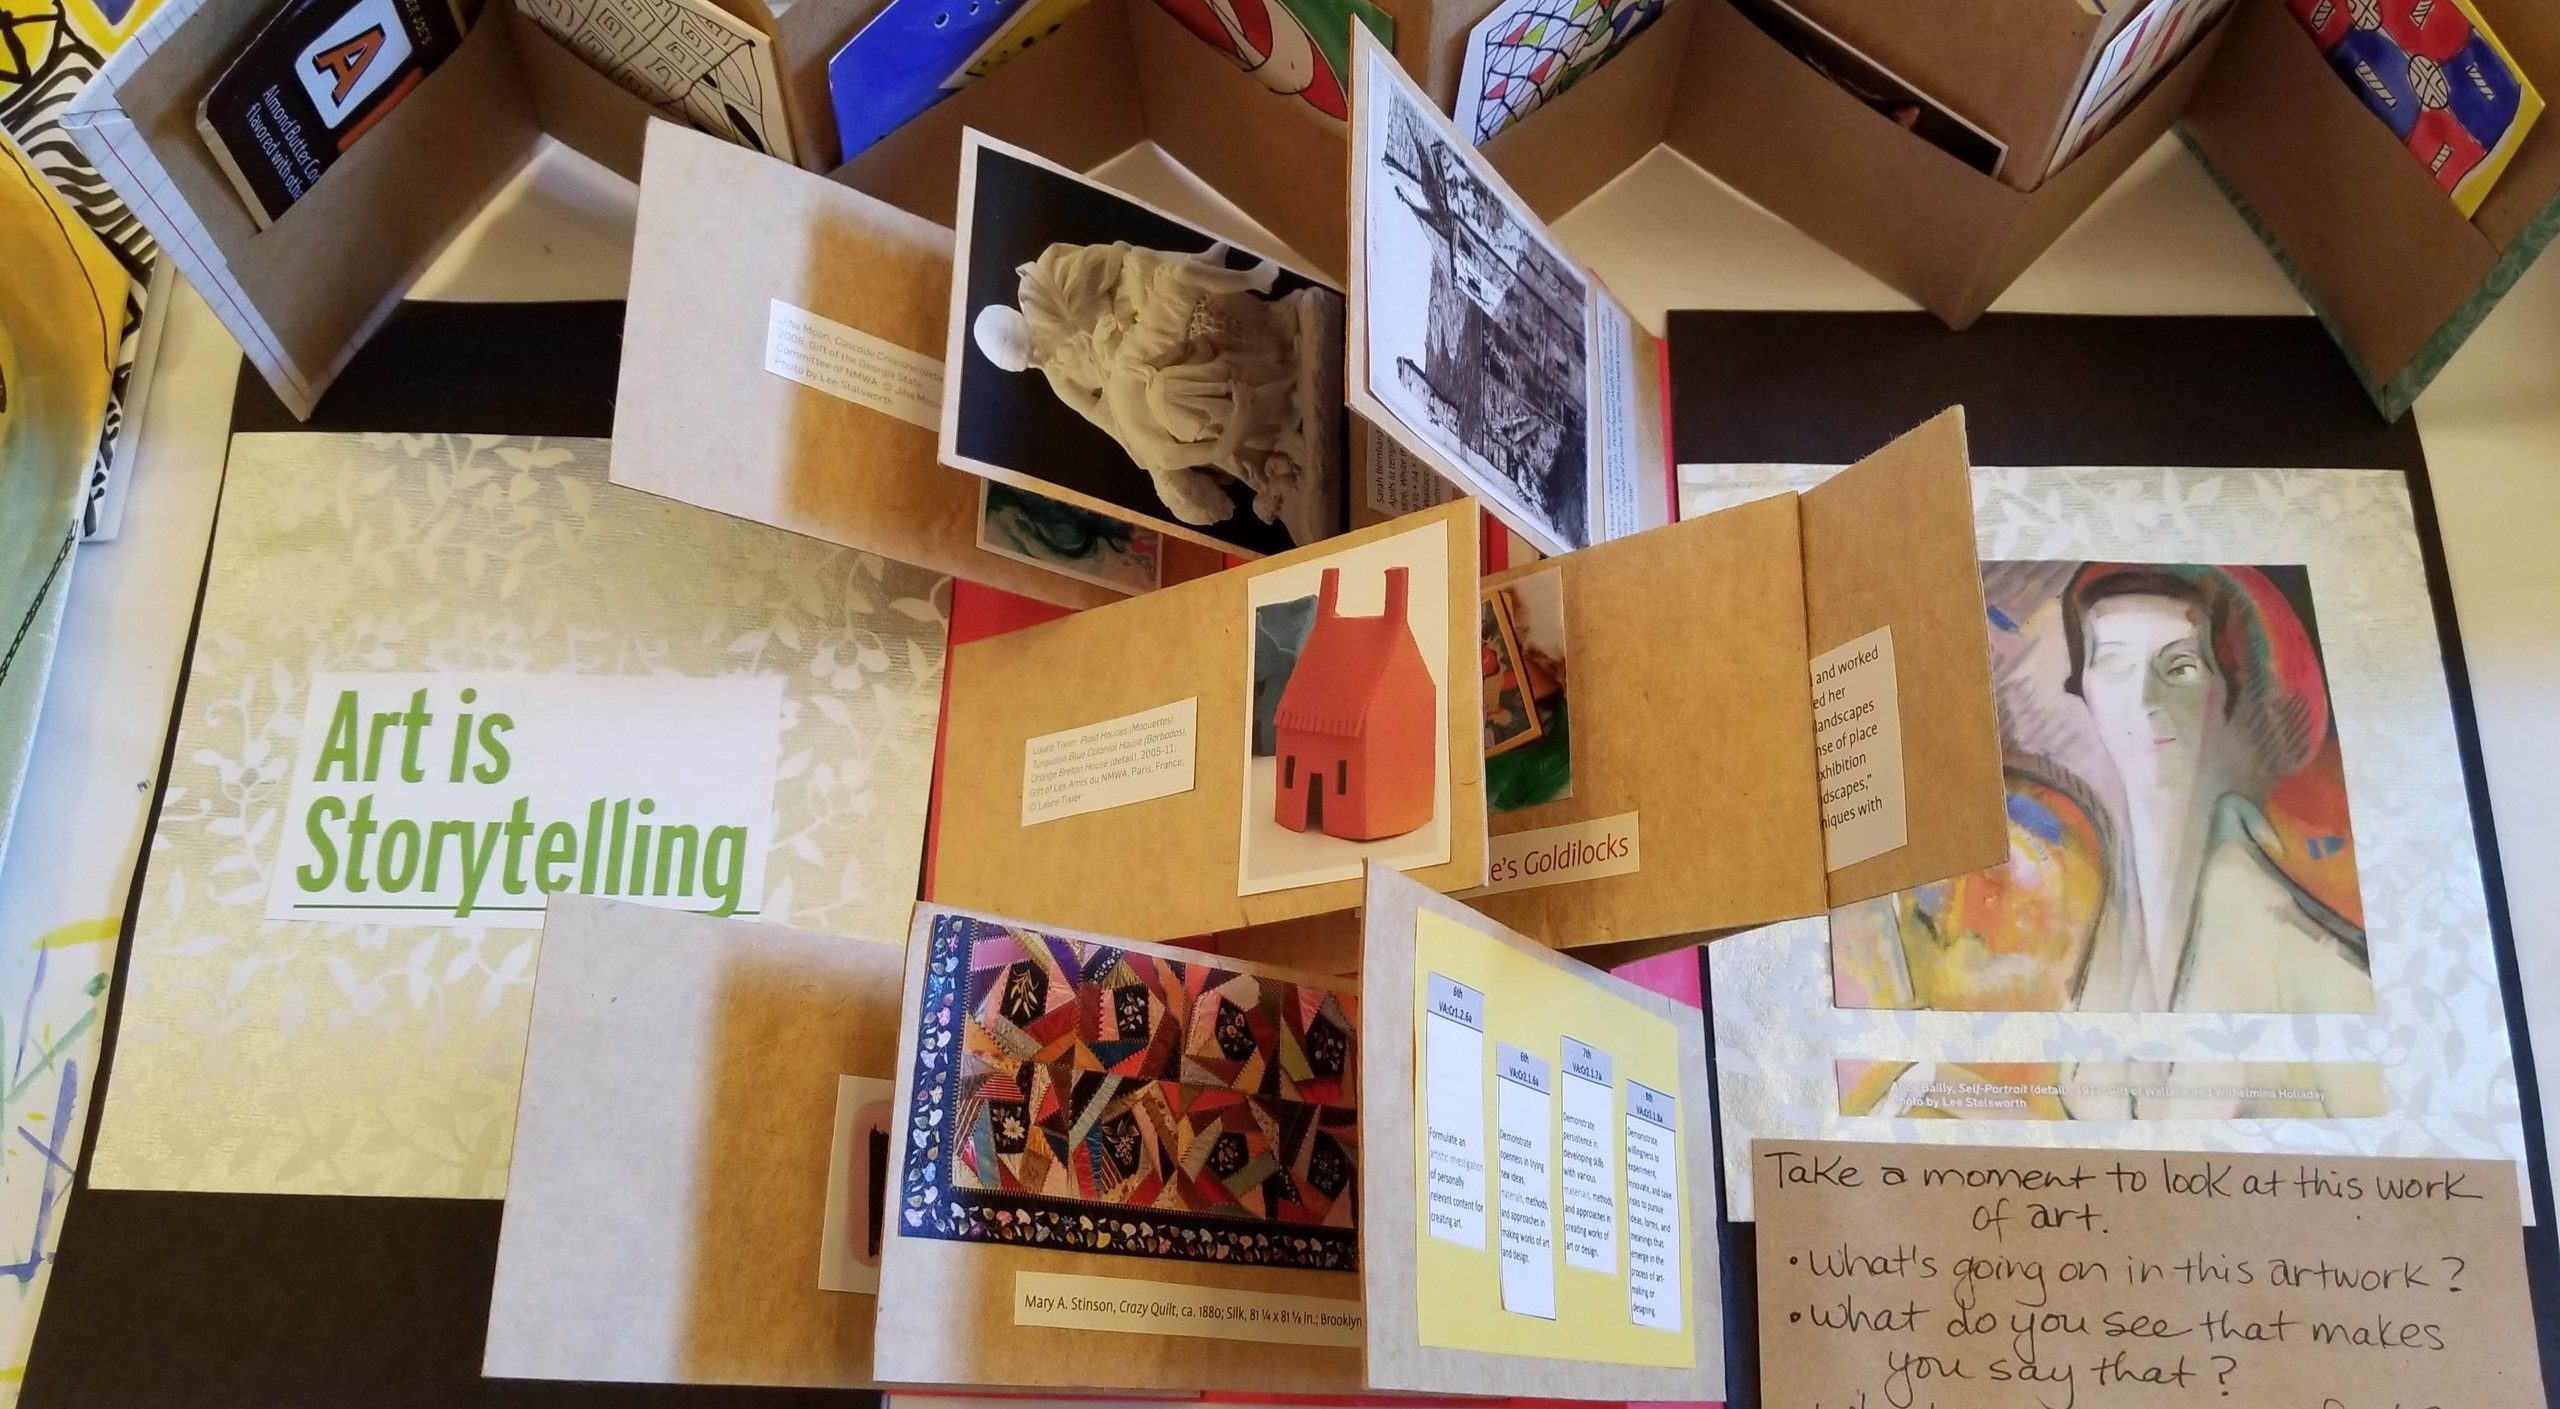 A birds-eyed view of a display of artists books showing a variety of folded paper and works of art.